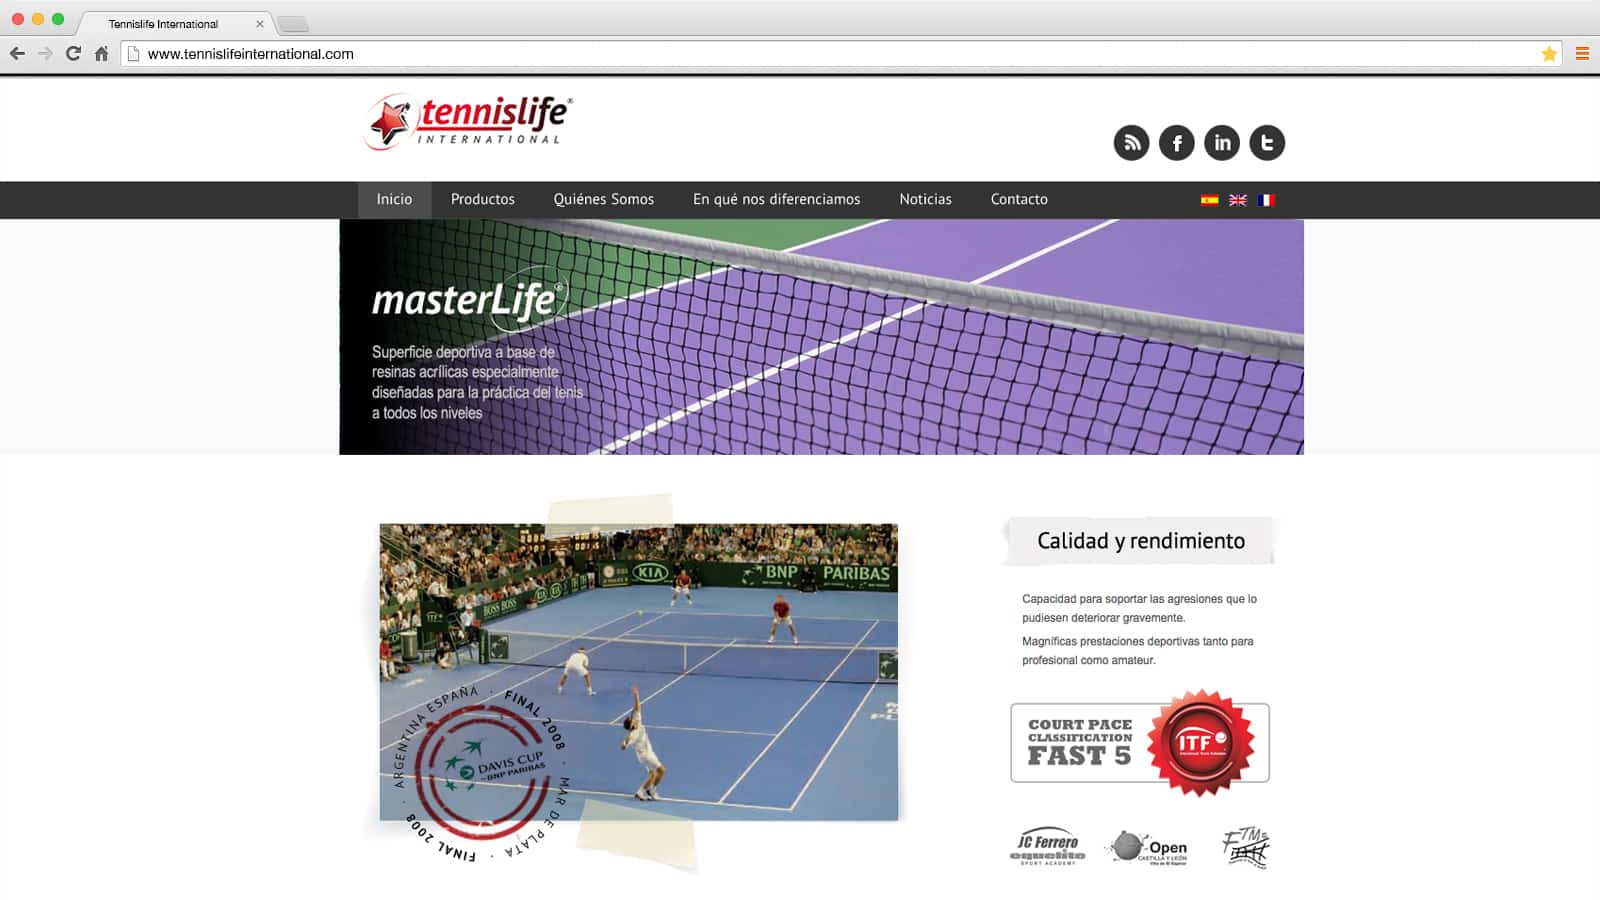 Tennislife International: web